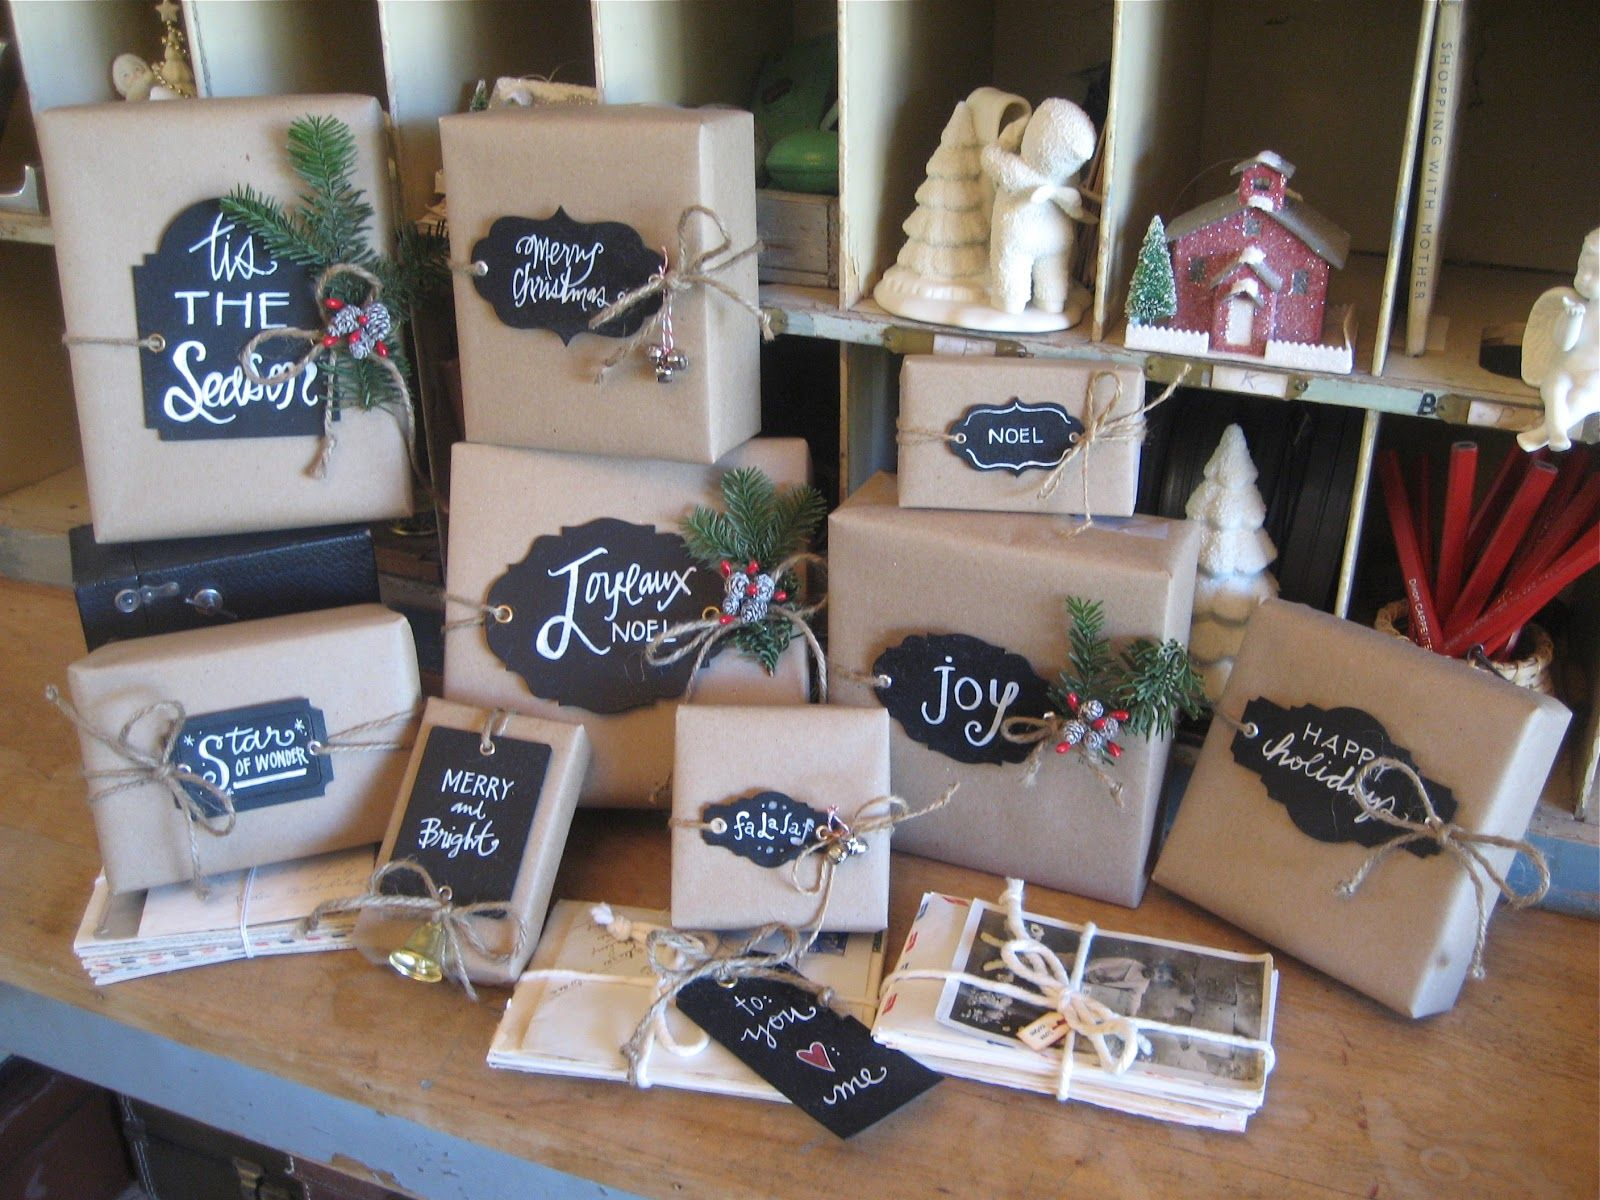 Chalkboard ideas for wrapping gifts love this cute with the chalkboard ideas for wrapping gifts love this cute with the craft paper jeuxipadfo Image collections